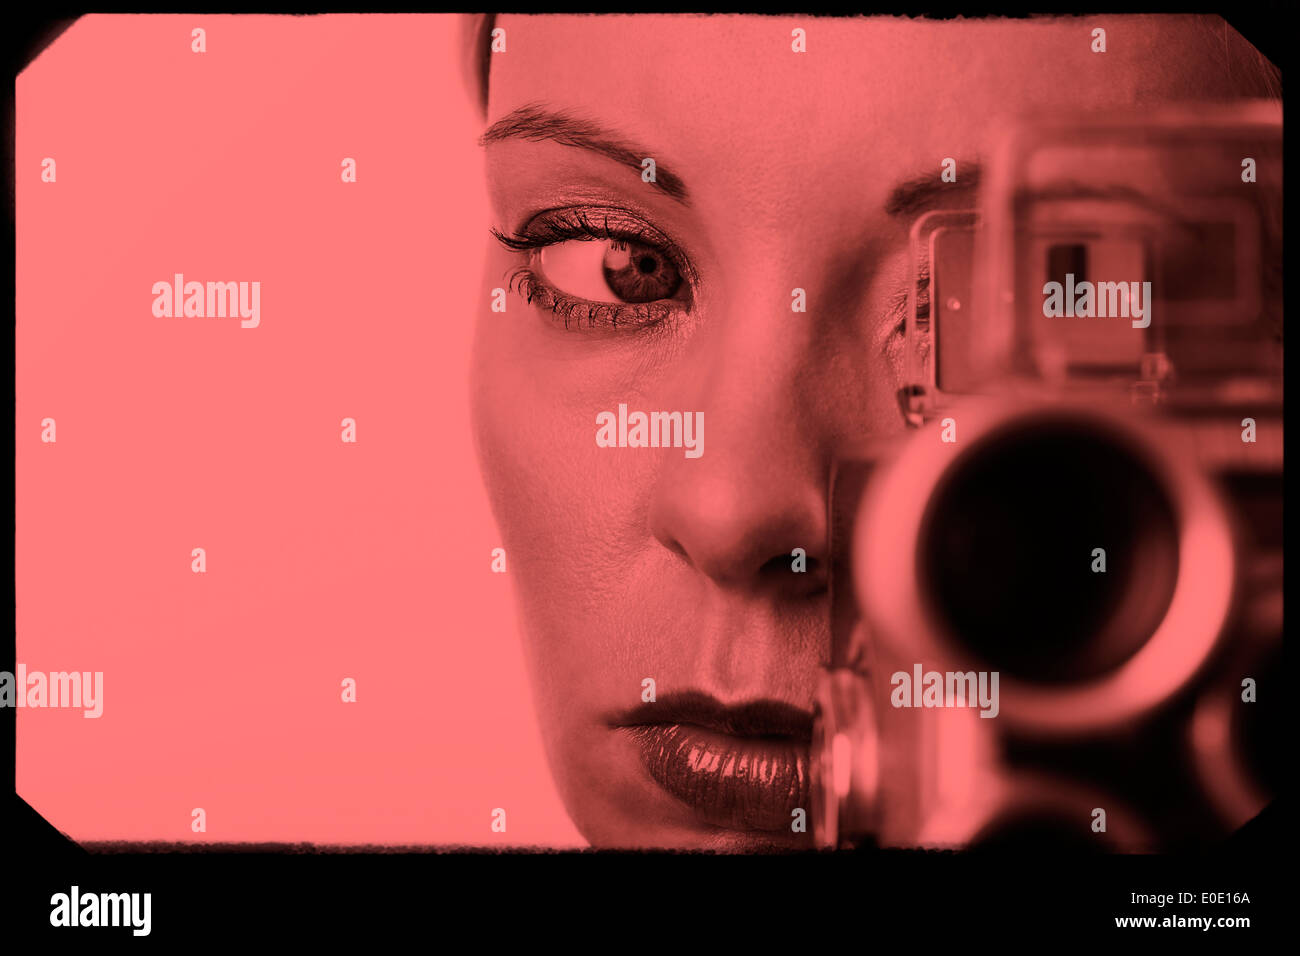 Tight crop shot on face of womanlooking through a kodak super 8 movie camera with red filter and movie film frame. - Stock Image